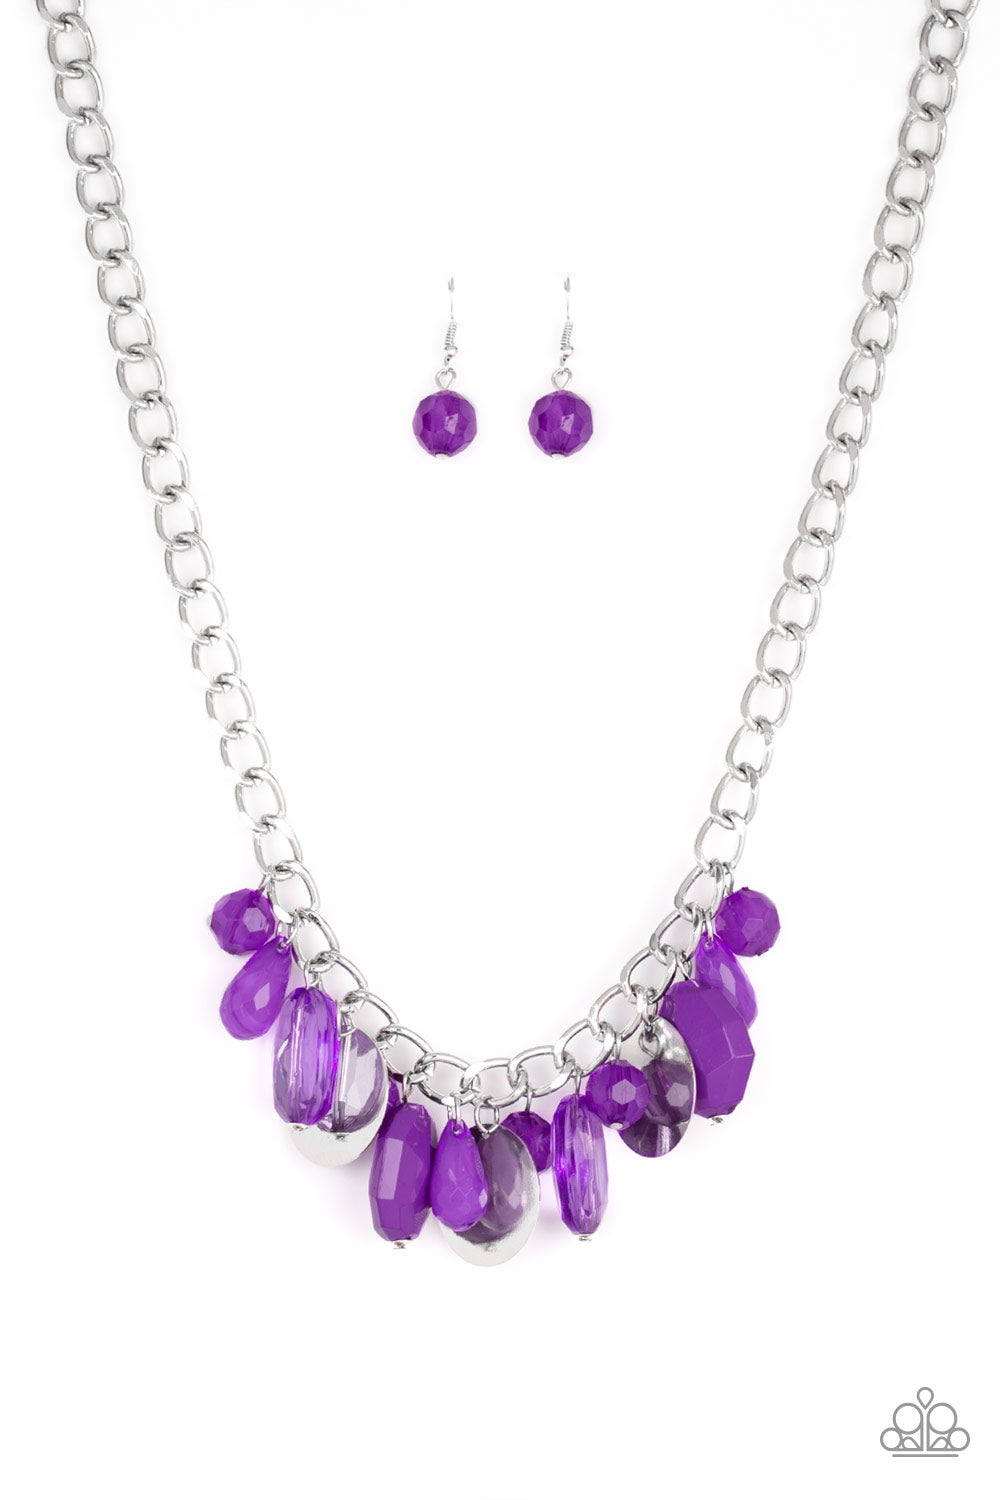 five-dollar-jewelry-treasure-shore-purple-necklace-paparazzi-accessories